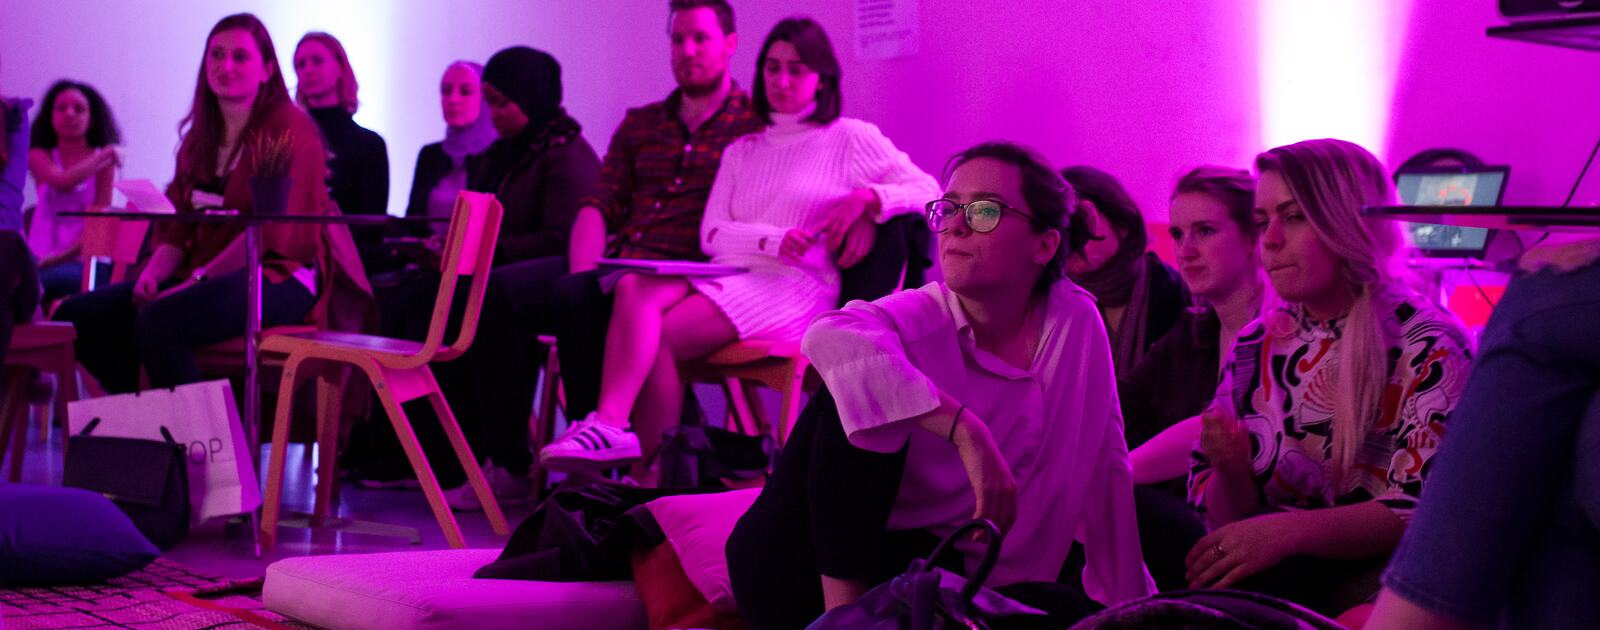 Violet Nights, audience